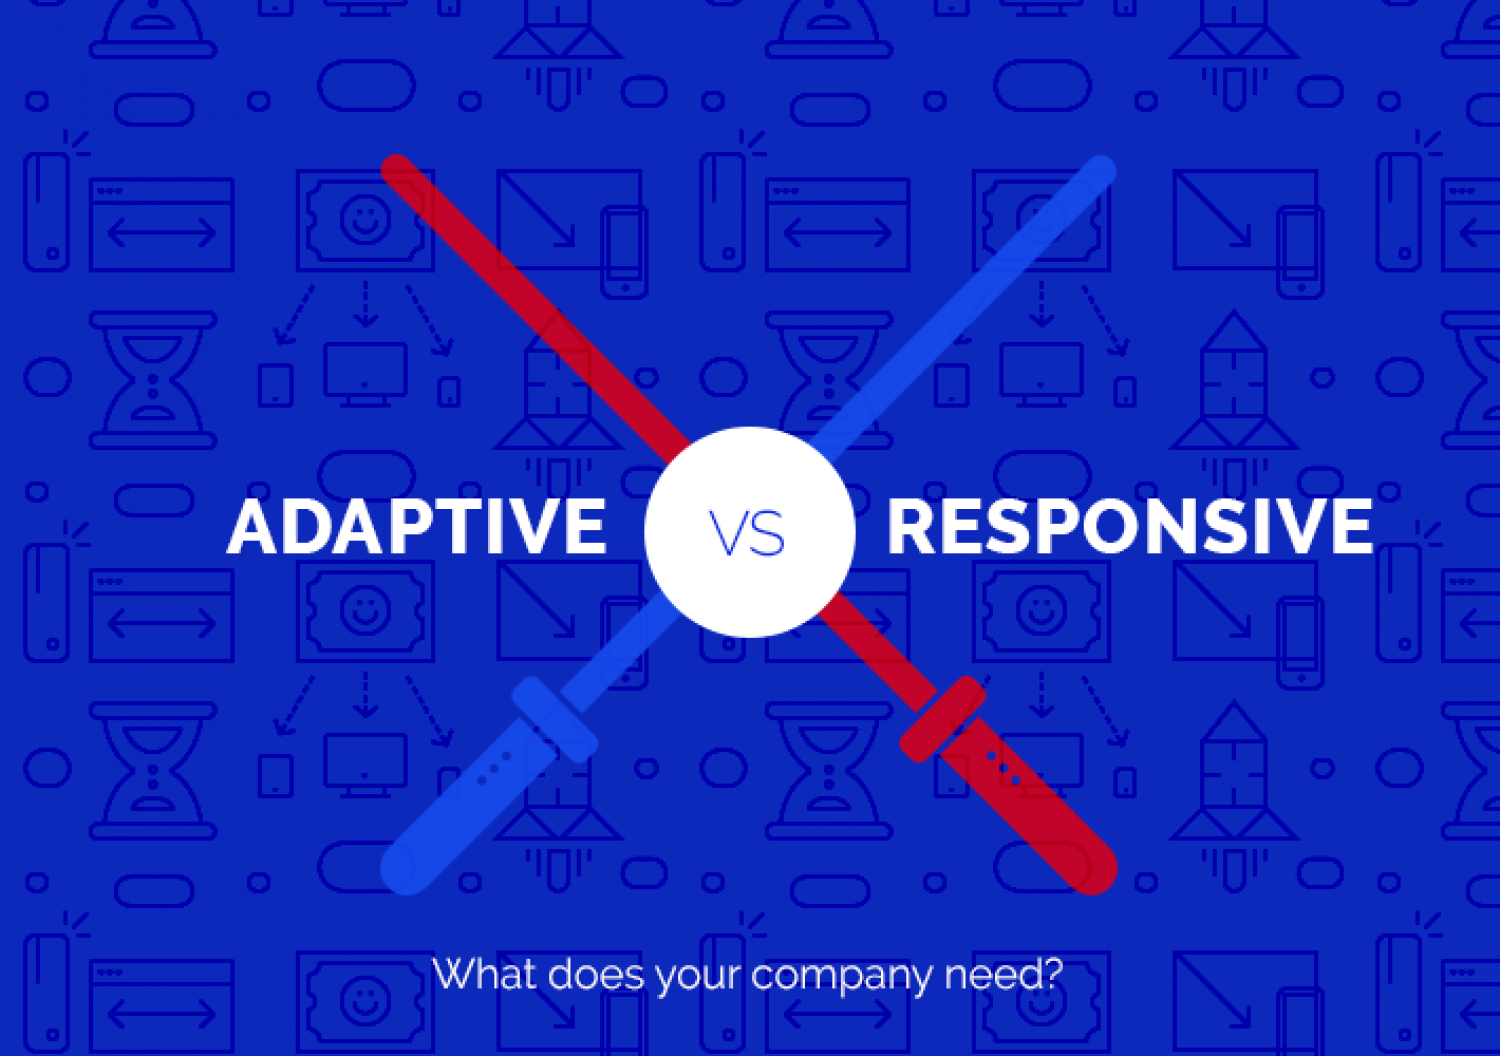 Adaptive vs. Responsive Infographic